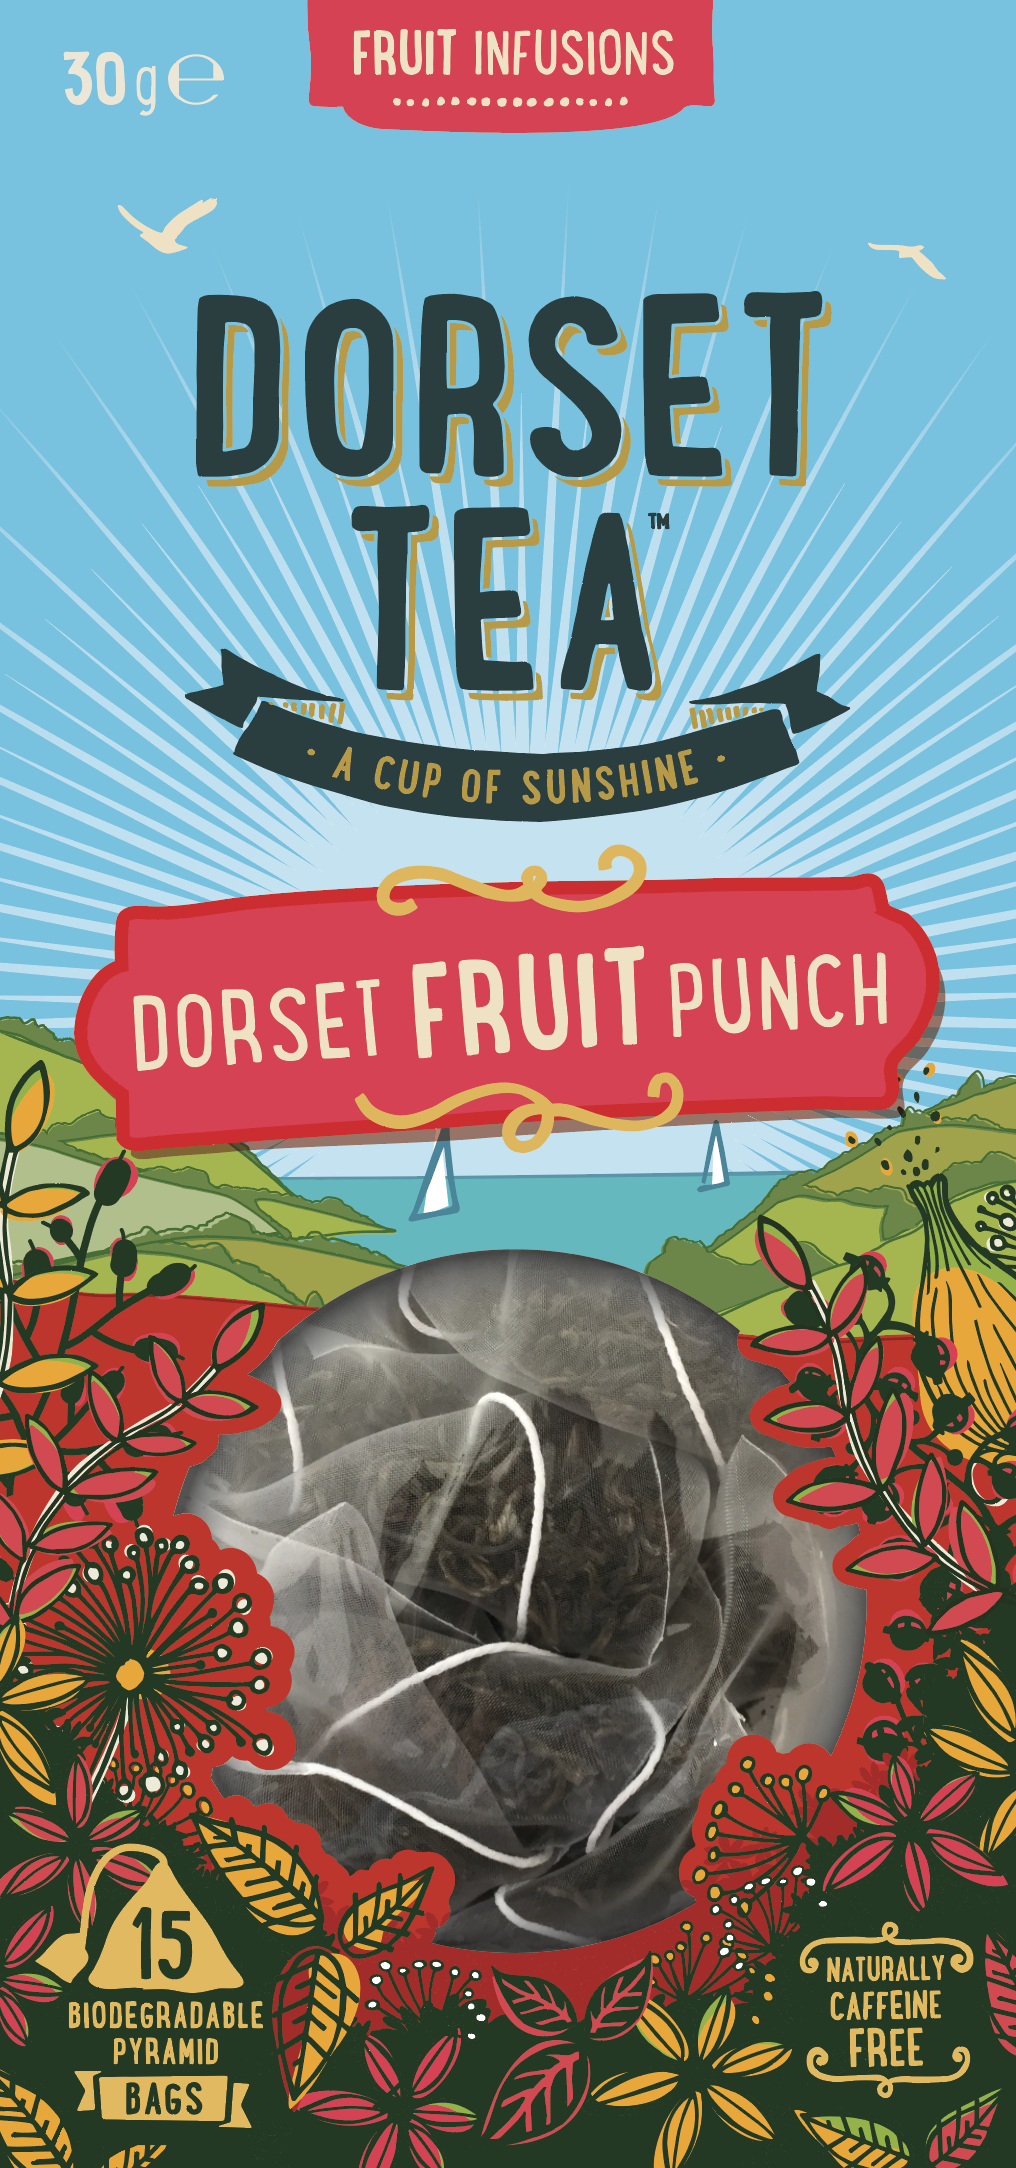 Dorset Fruit Punch 15 Pyramid Bags